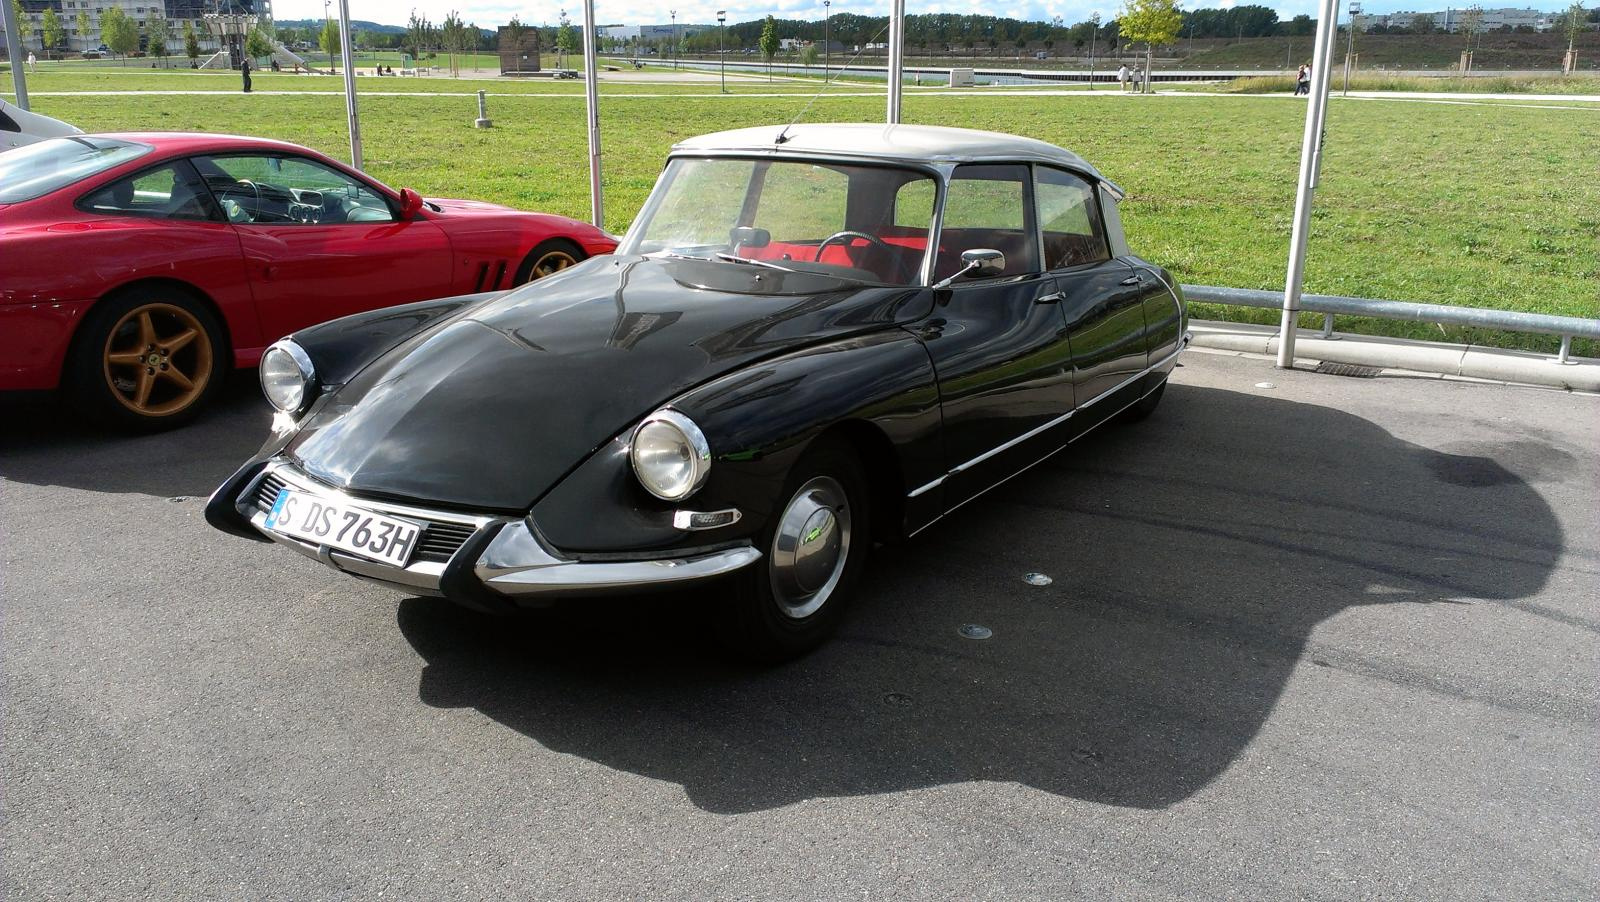 Citroen DS 19 - Meilenwerk Böblingen | Flickr - Photo Sharing!